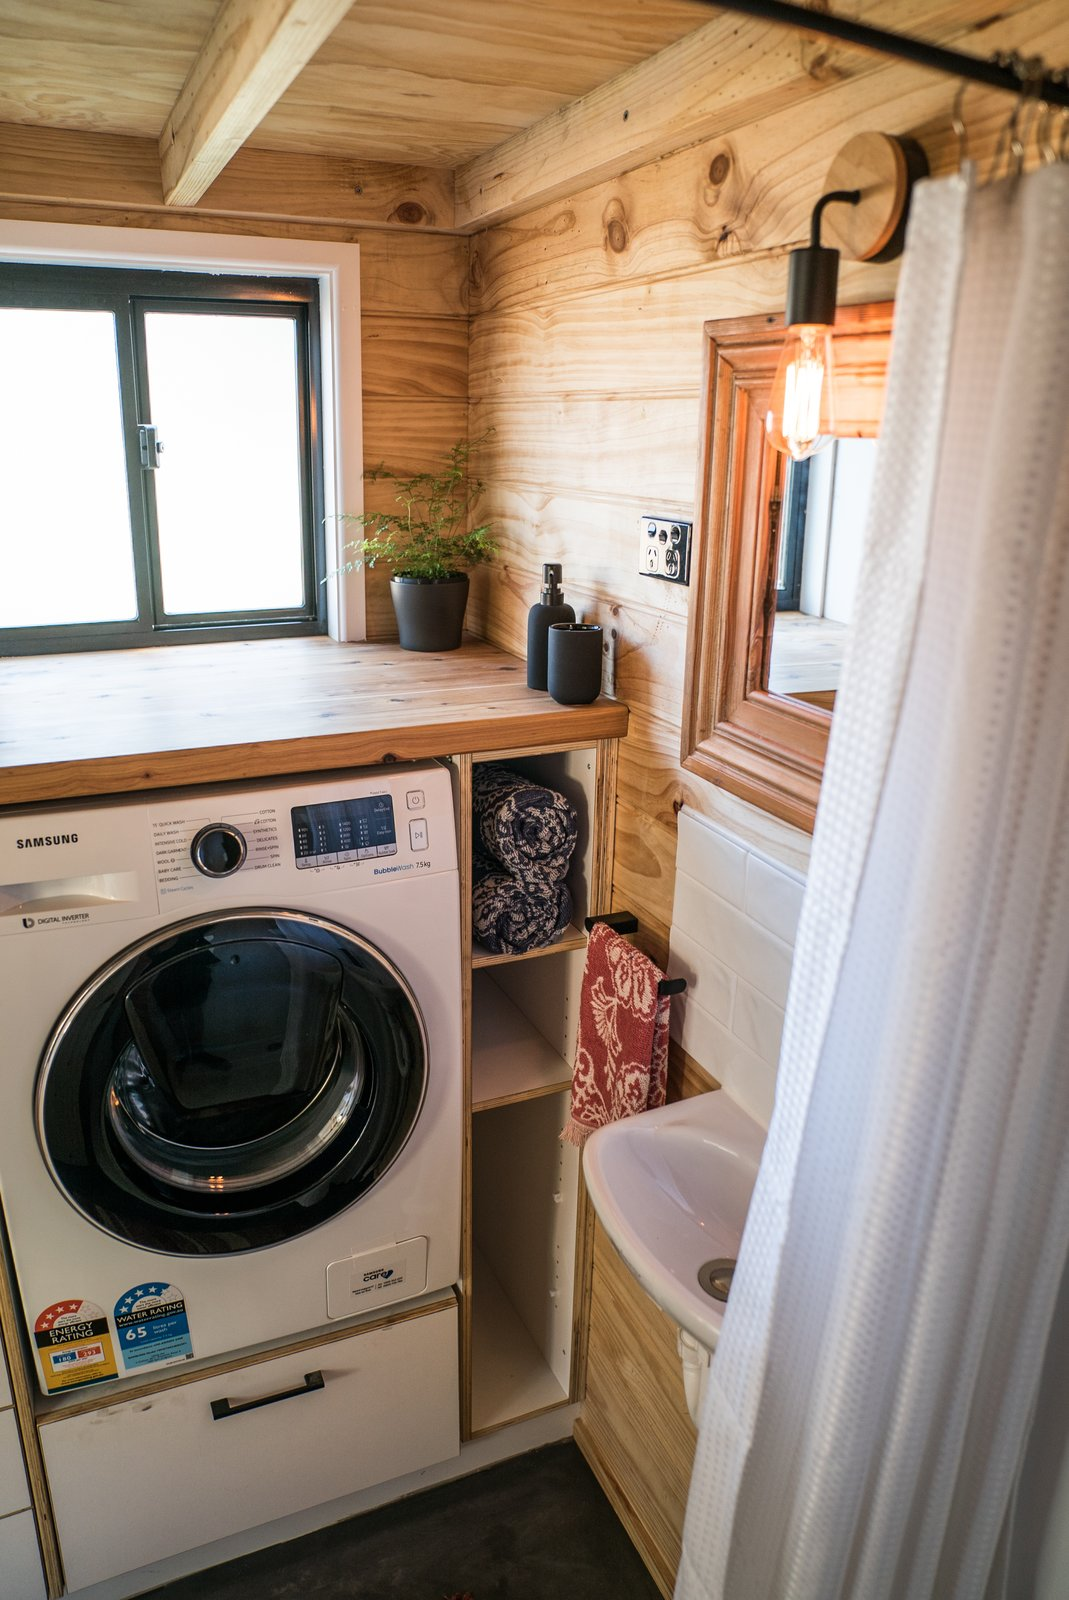 Sojourner tiny house bathroom and laundry